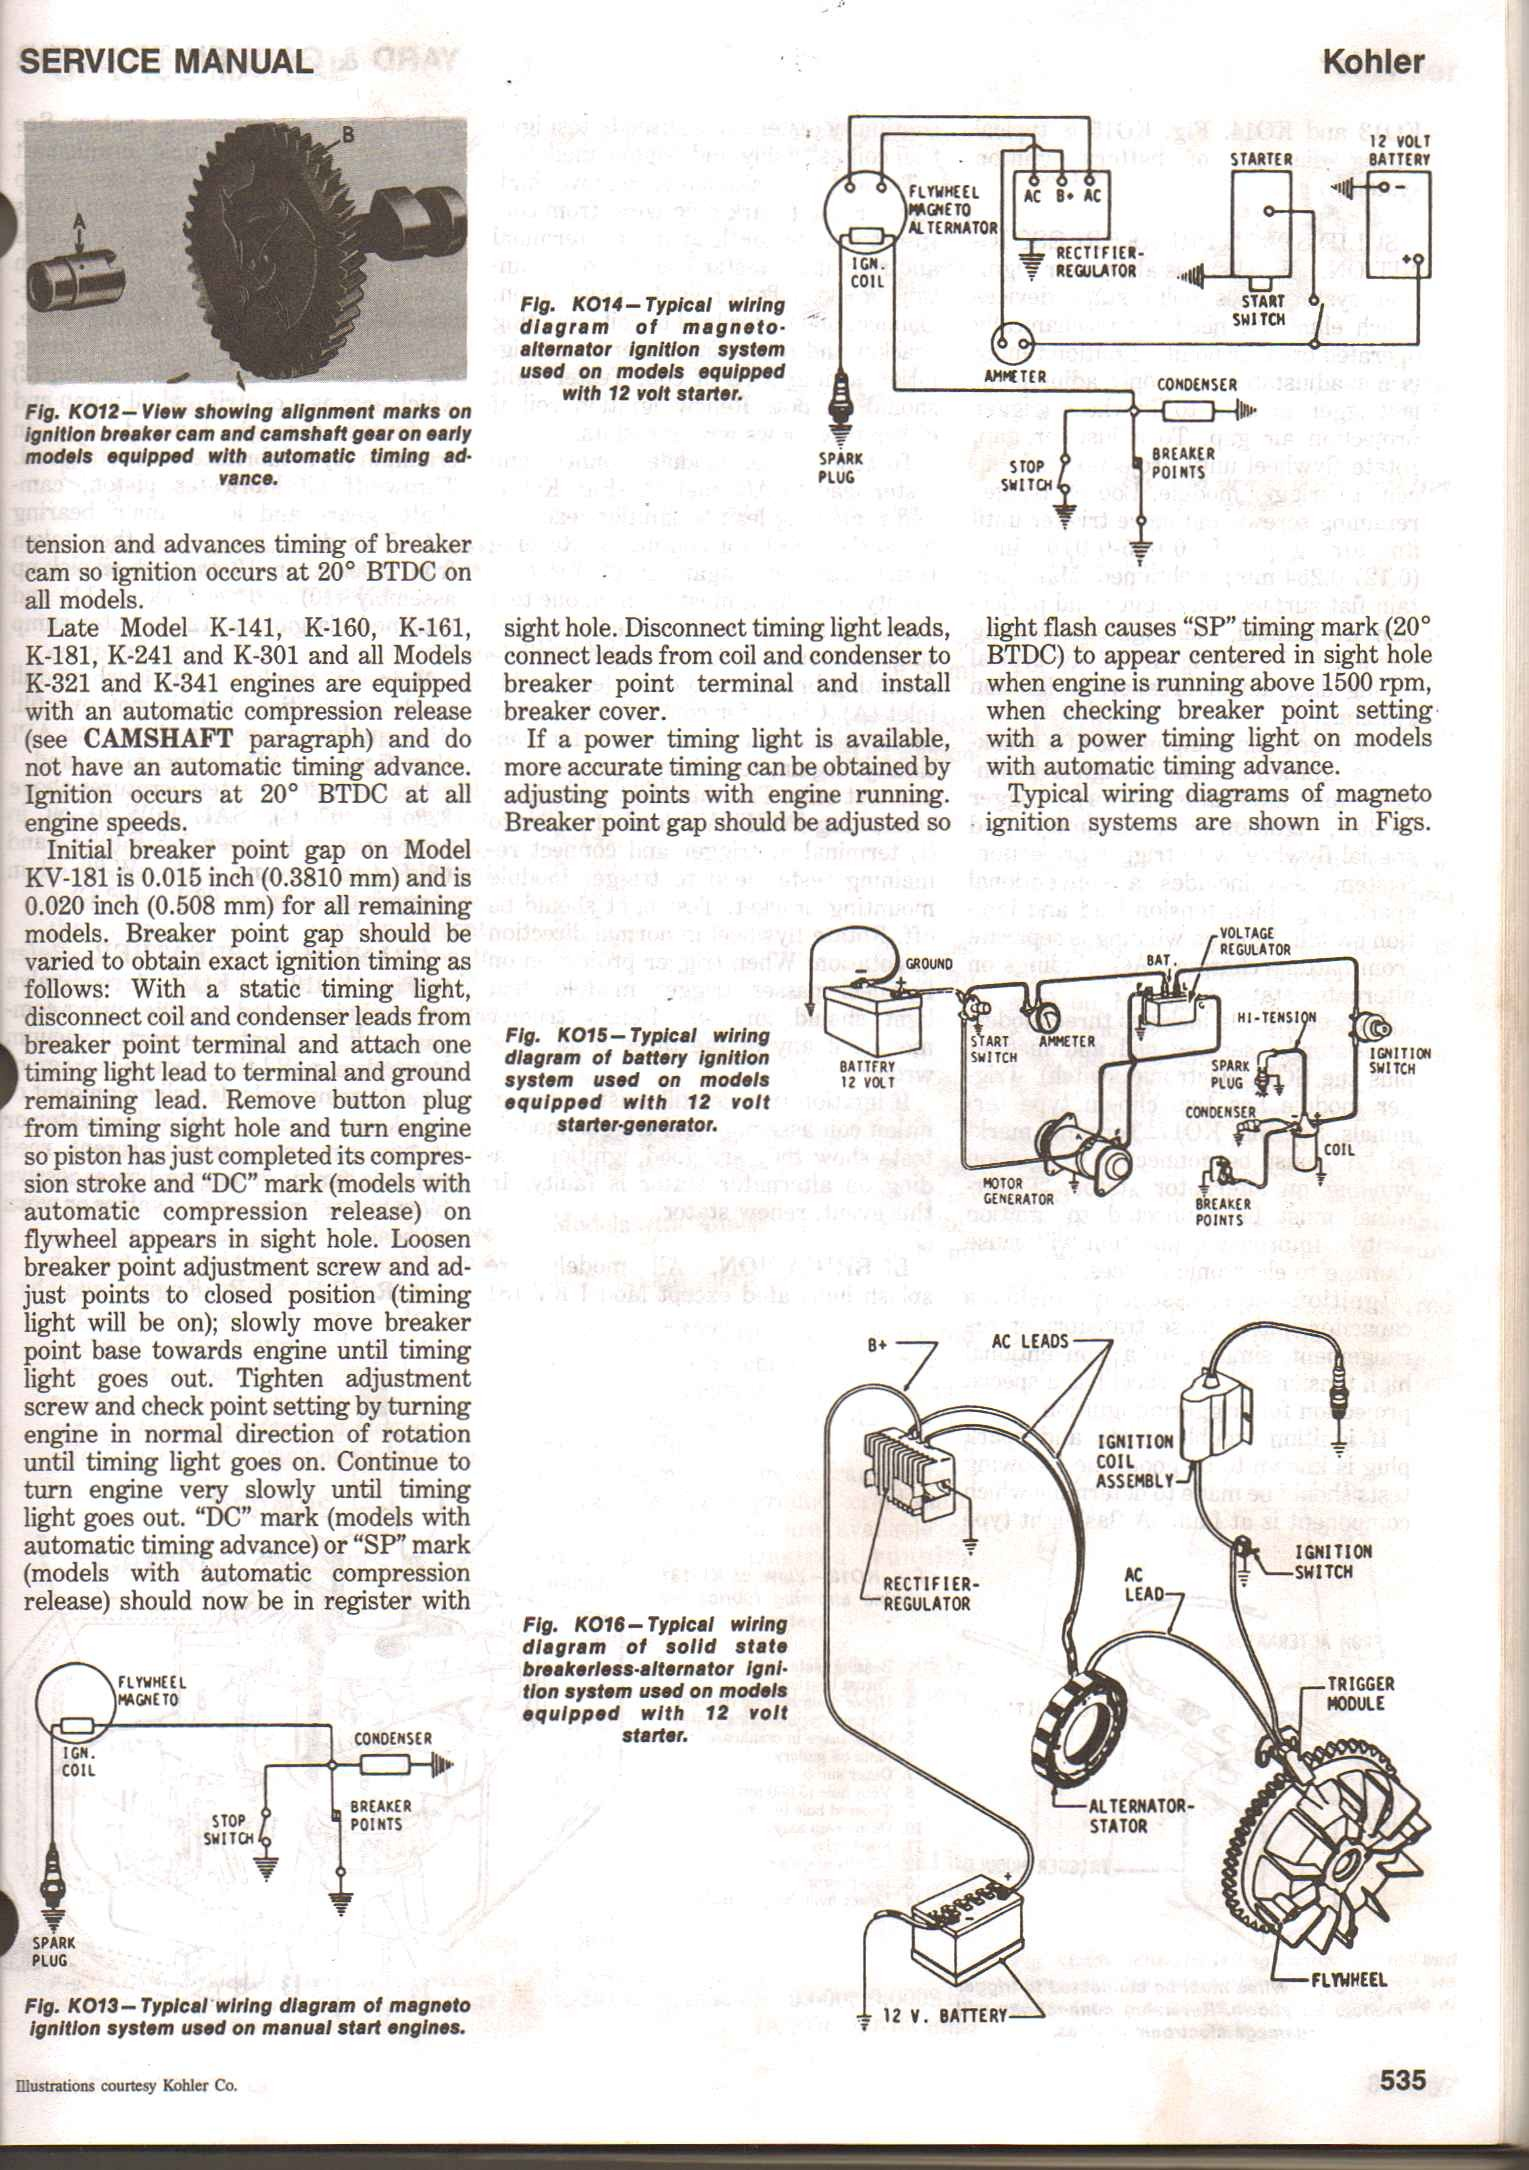 Kohler K301 Engine Diagram I Have A Kohler K301 that I M Working On I Noticed that It Starts Of Kohler K301 Engine Diagram